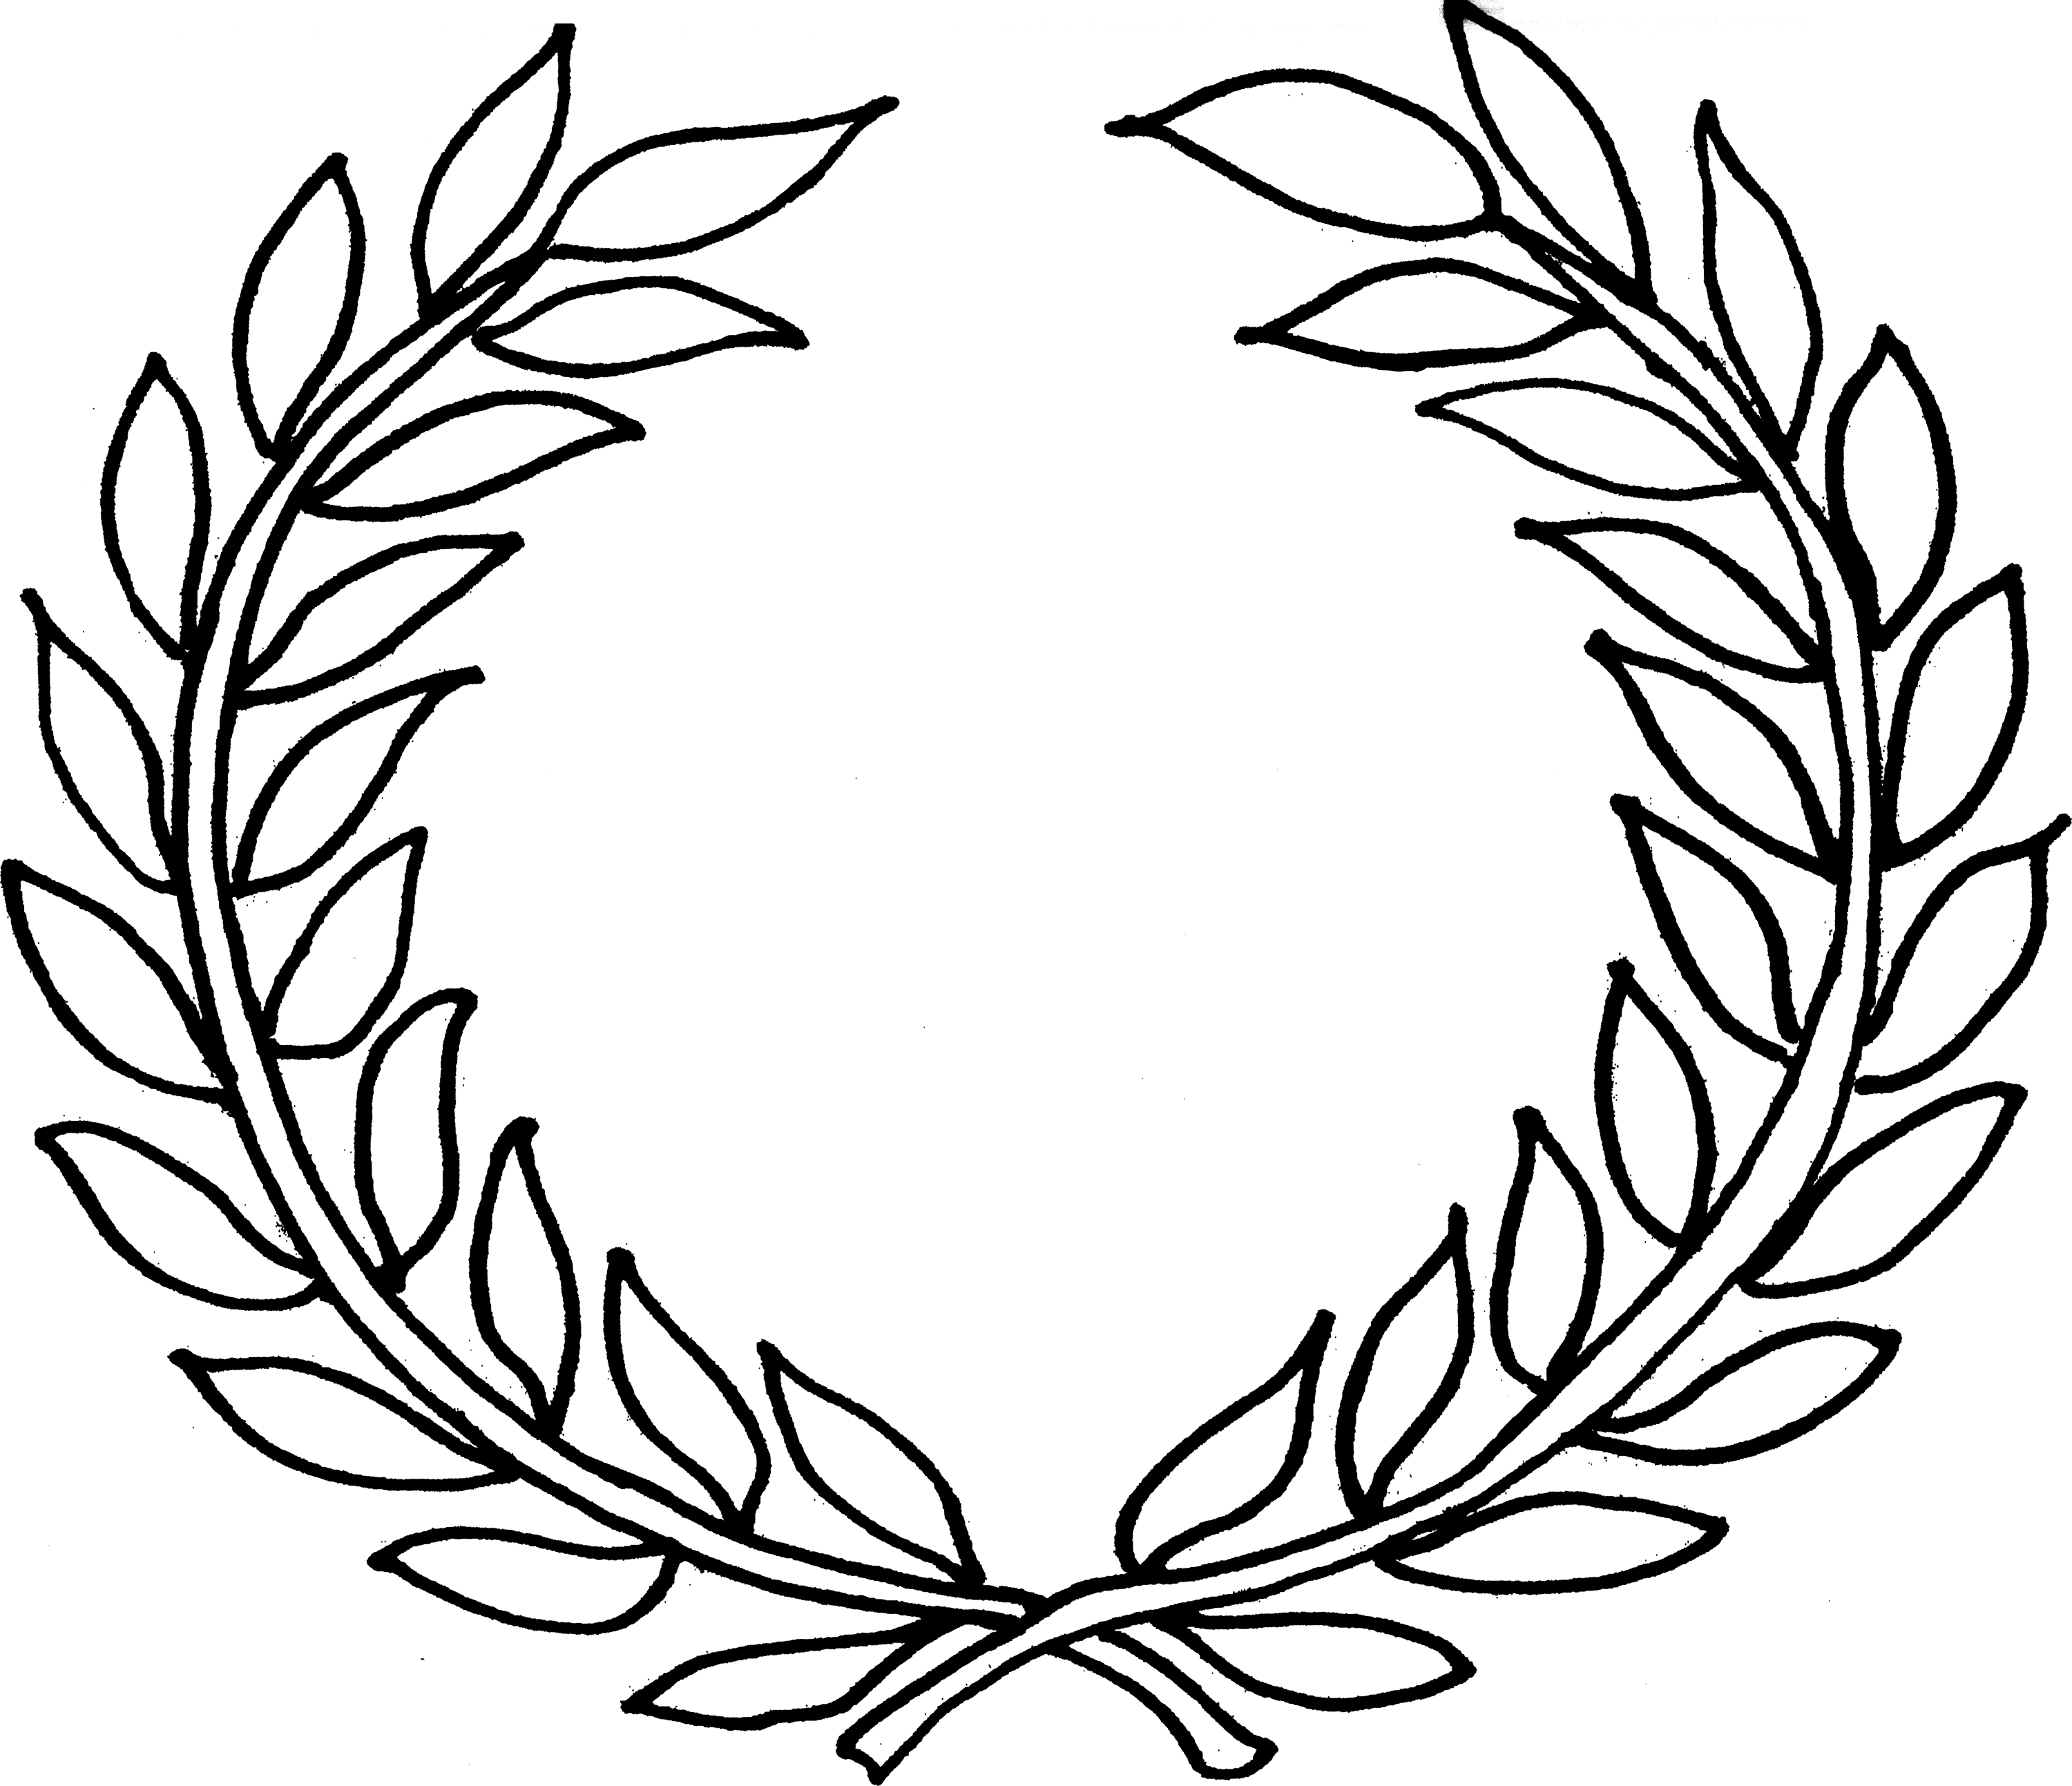 Wreath template leaves clipart clipart freeuse download Collection of Laurel wreath clipart | Free download best ... clipart freeuse download